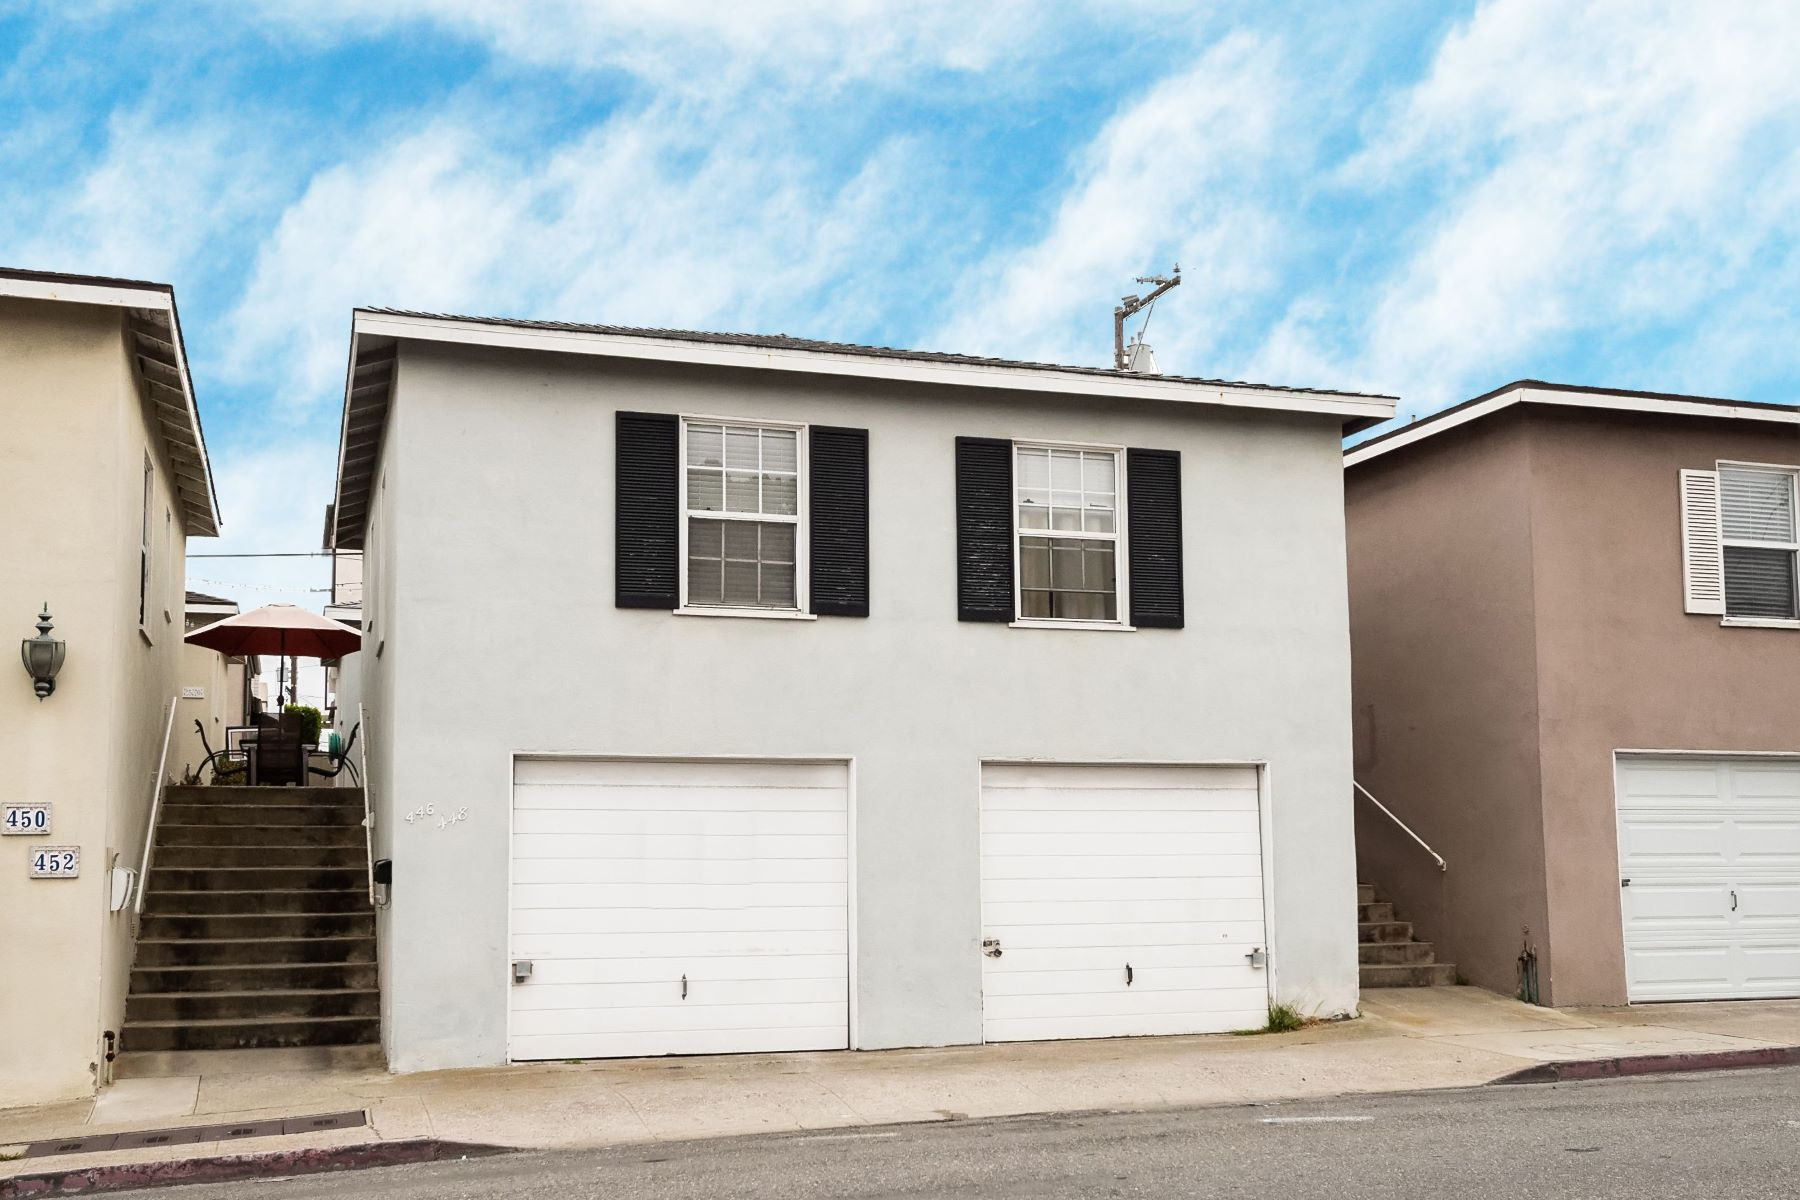 Multi-Family Homes for Sale at 446 Longfellow Avenue, Hermosa Beach, CA 90254 446 Longfellow Avenue Hermosa Beach, California 90254 United States